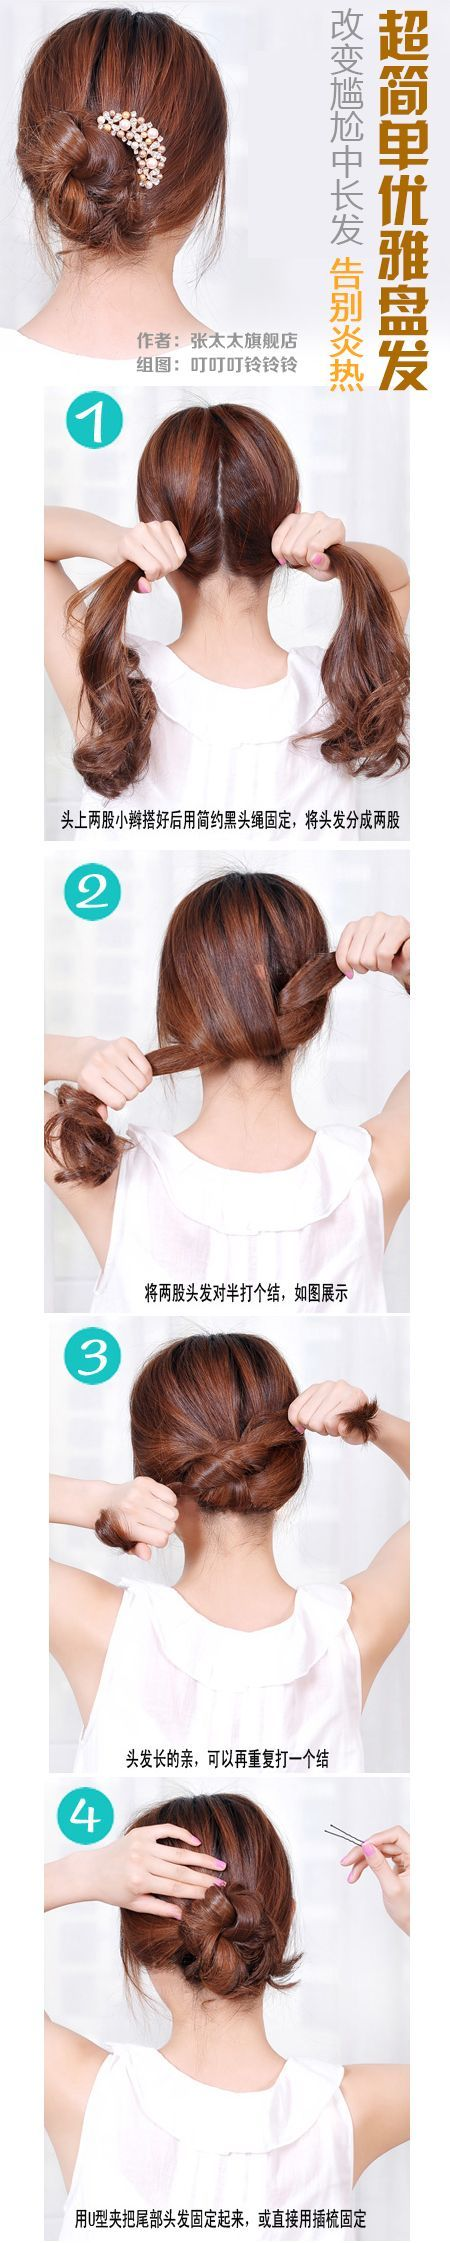 DIY hair style in some chinese stuff that no one understands! looks easy to follow, though.